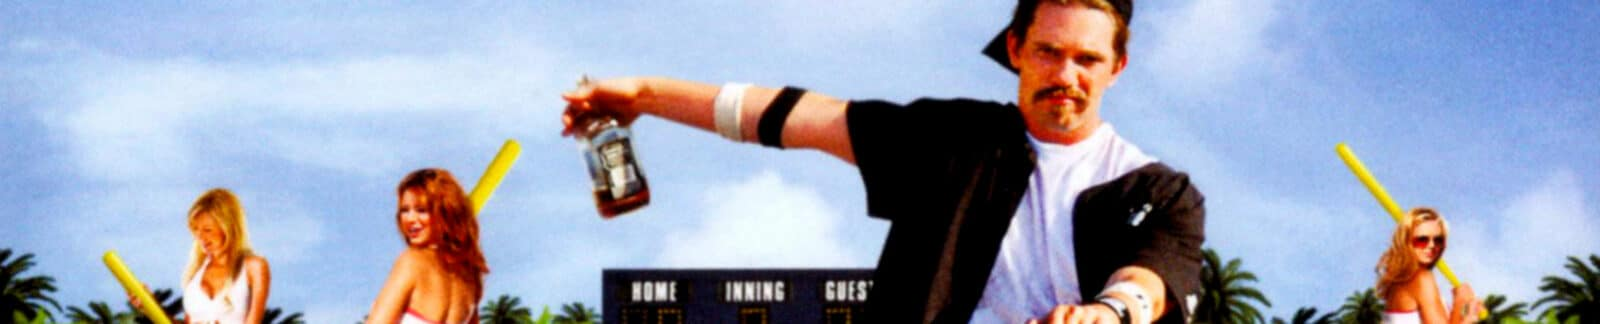 Screwball: The Ted Whitfield Story baseball movie header